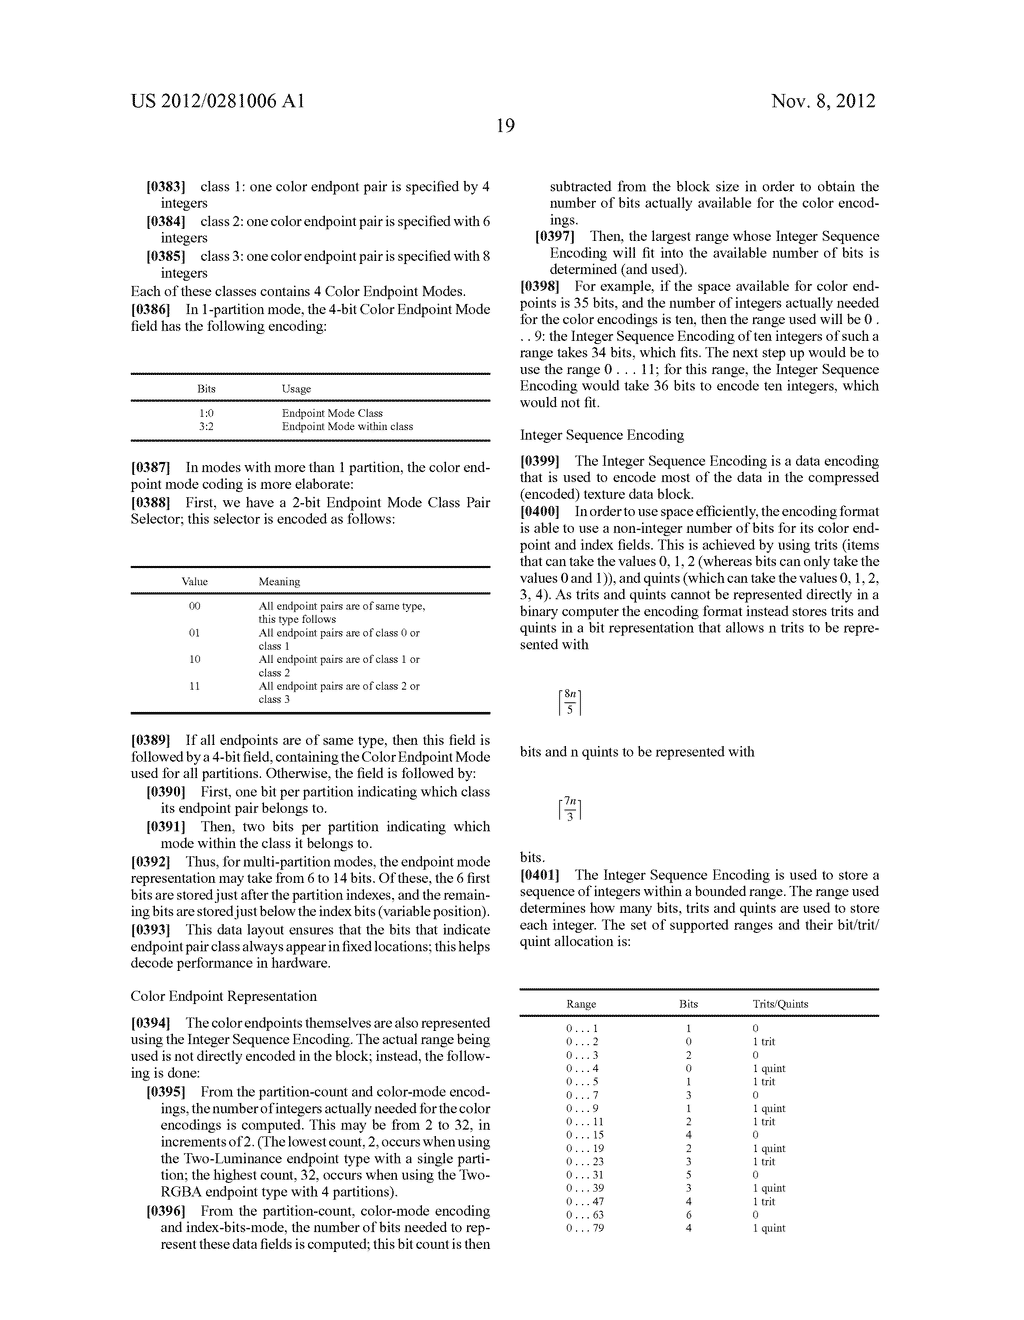 Method Of And Apparatus For Encoding And Decoding Data - diagram, schematic, and image 31